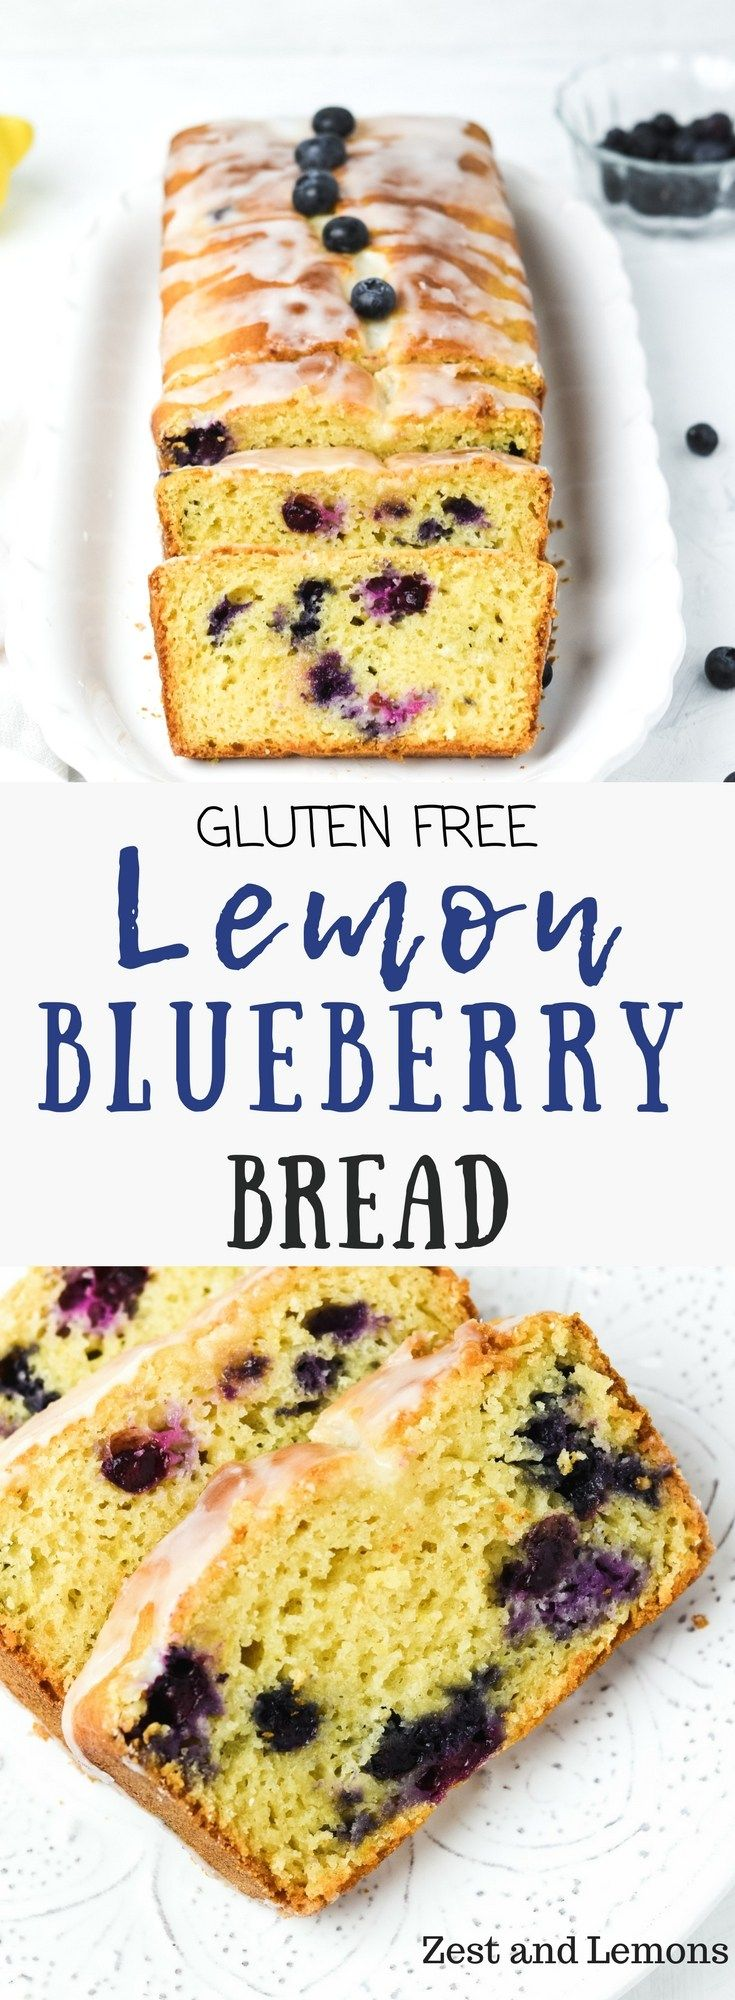 Gluten free lemon blueberry bread, sweet tangy and bursting with fresh blueberries! - Zest and Lemons #glutenfree #quickbread #glutenfreedessert #glutenfreebreakfasts